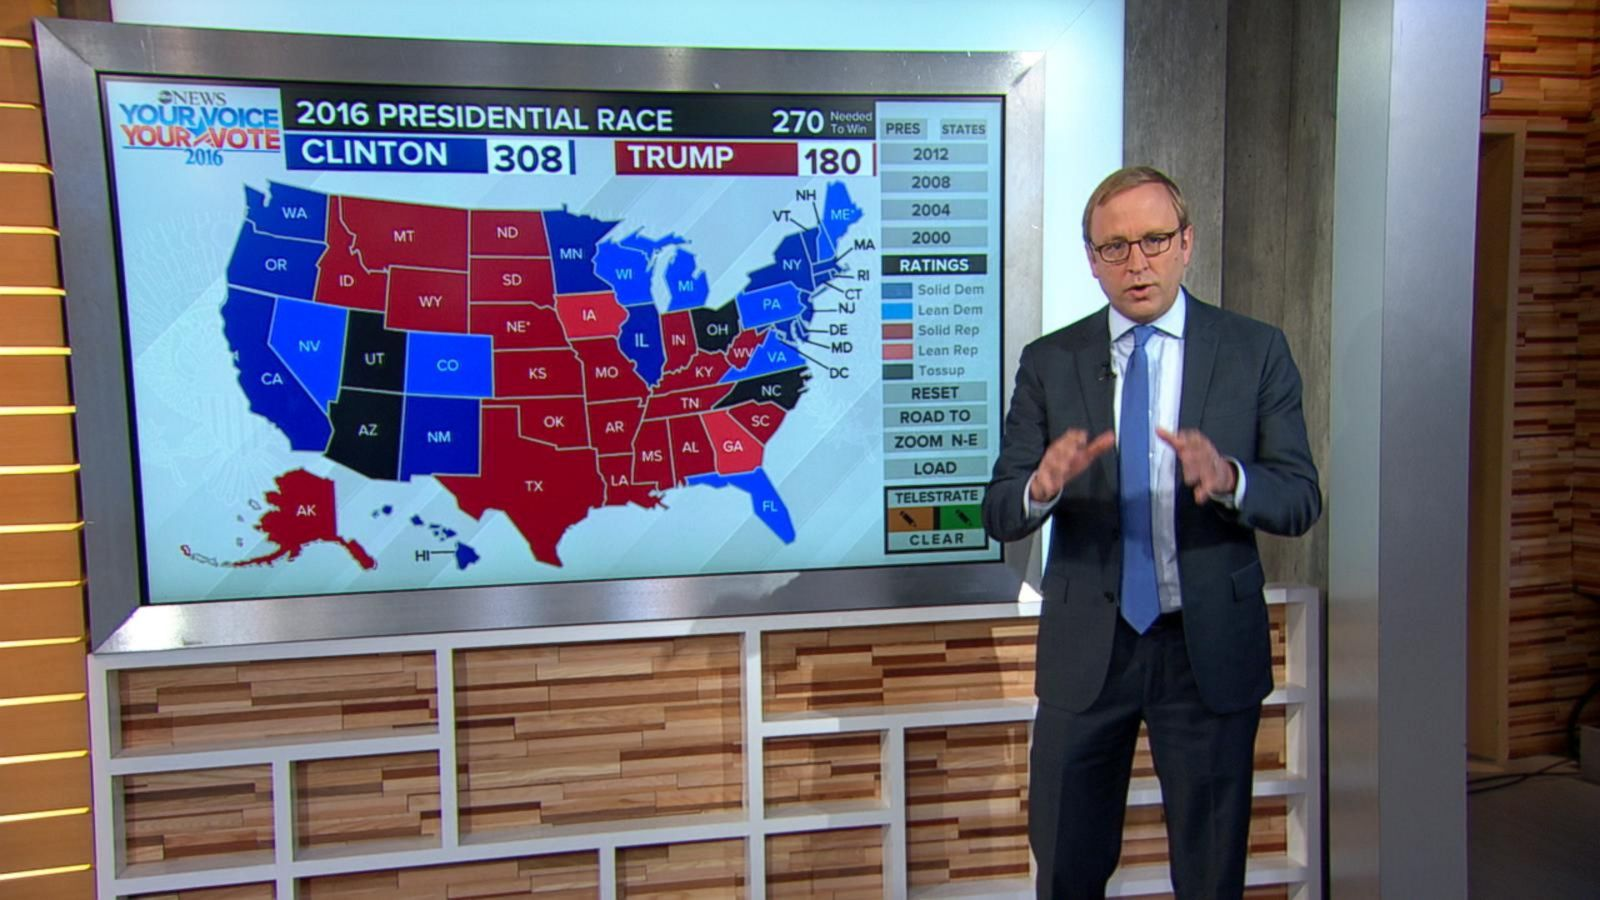 VIDEO: Hillary Clinton Holds Electoral Advantage Over Donald Trump